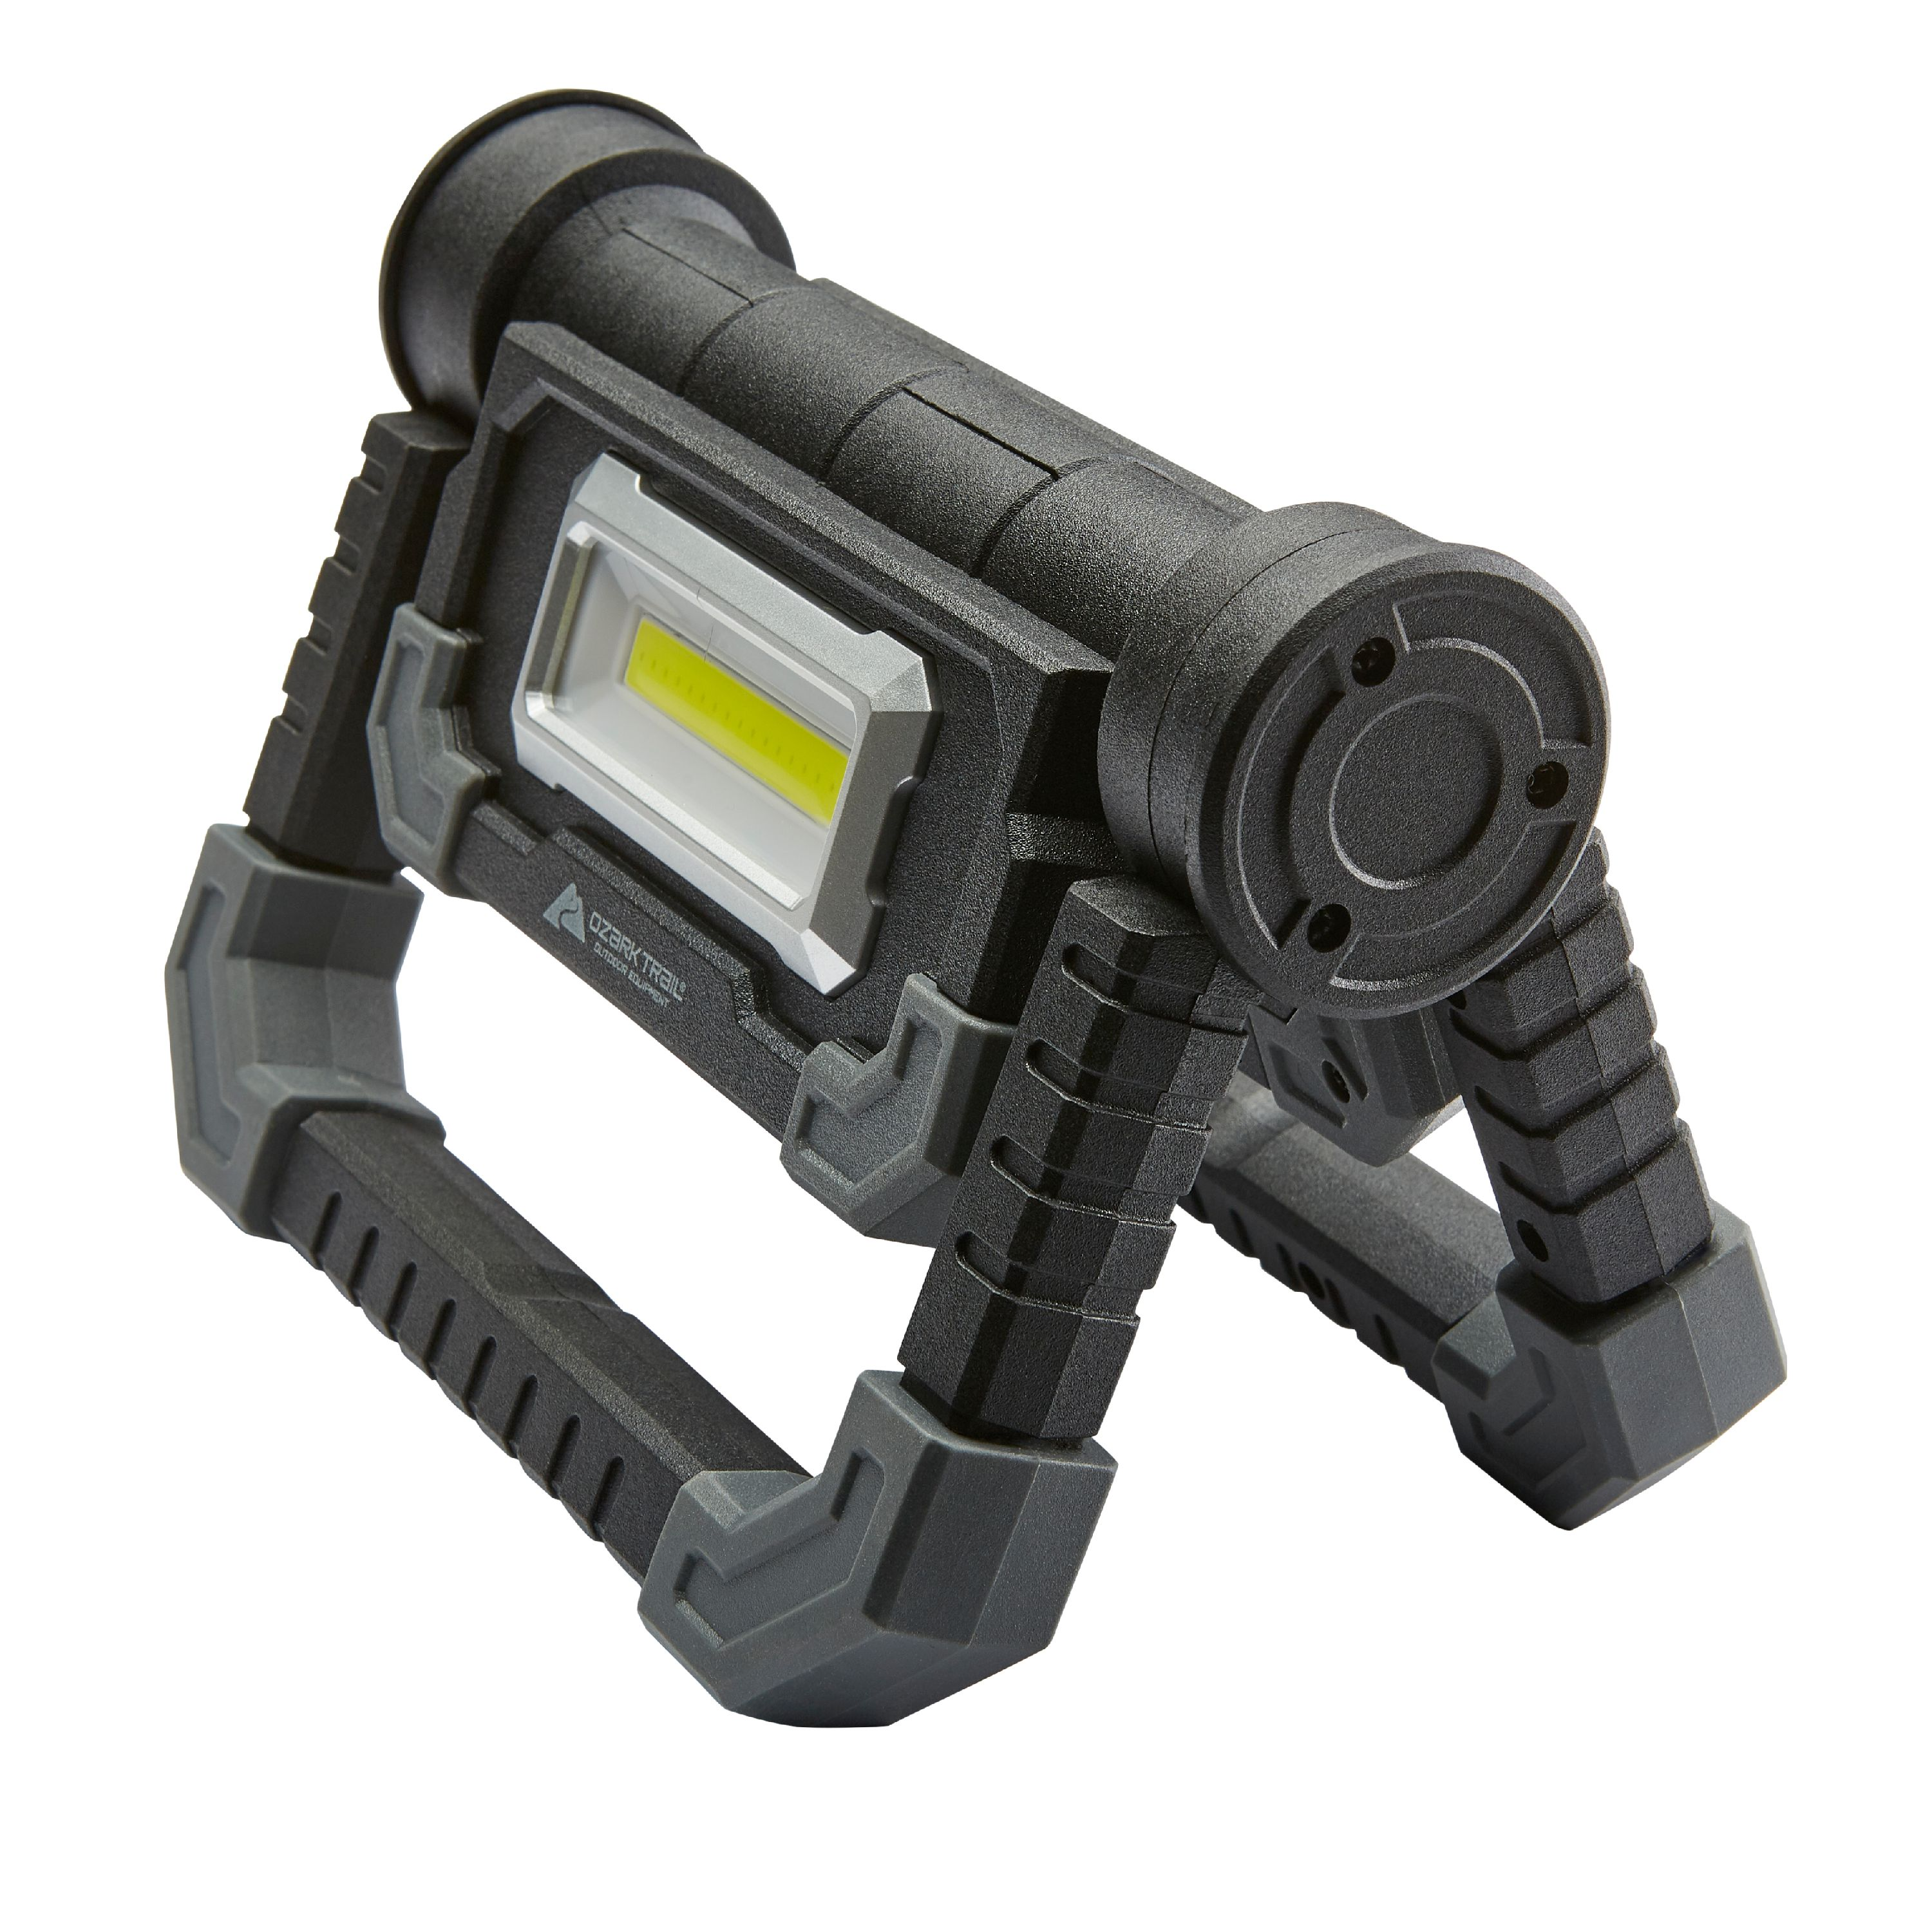 Ozark Trail 600 Lumens Portable LED Work Light